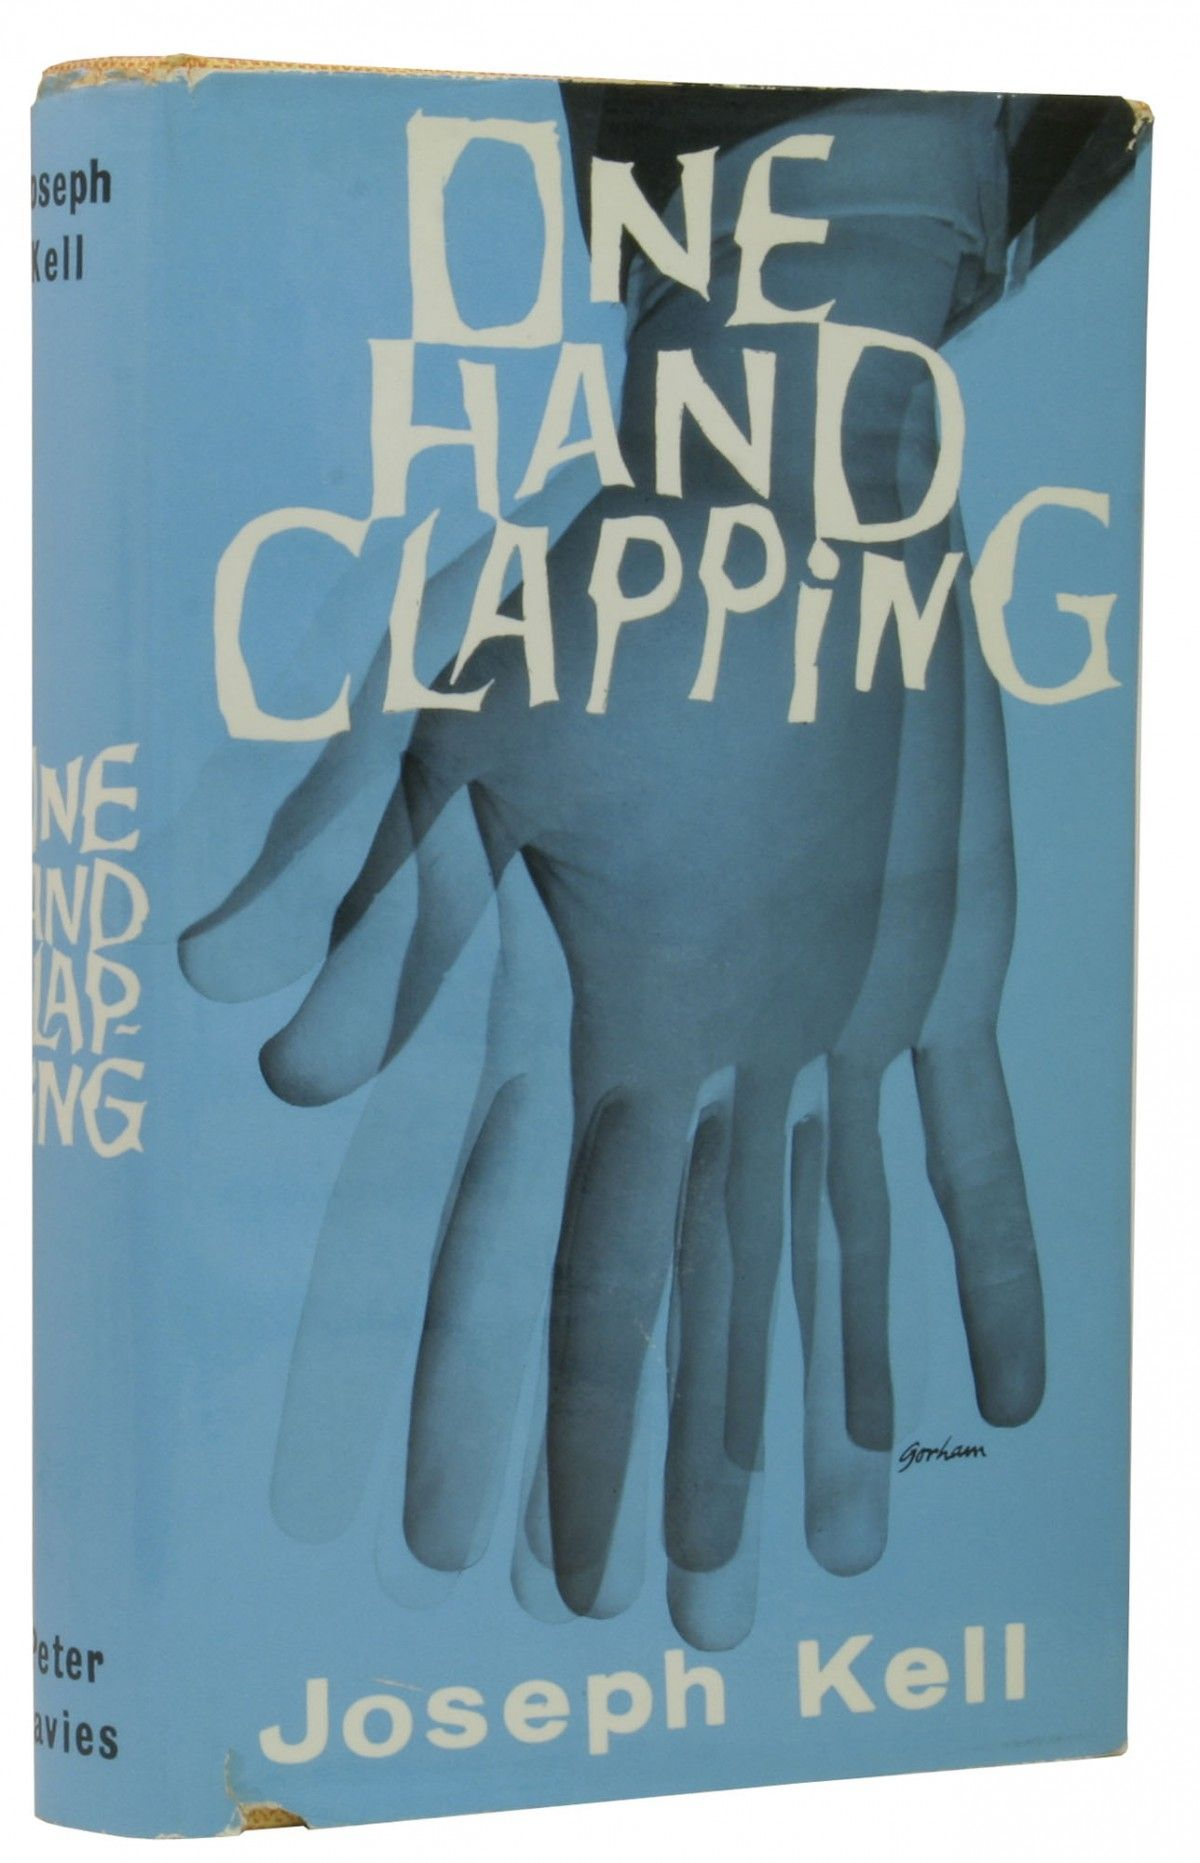 One Hand Clapping  Anthony Burgess (joseph Kell)  1961  First Edition